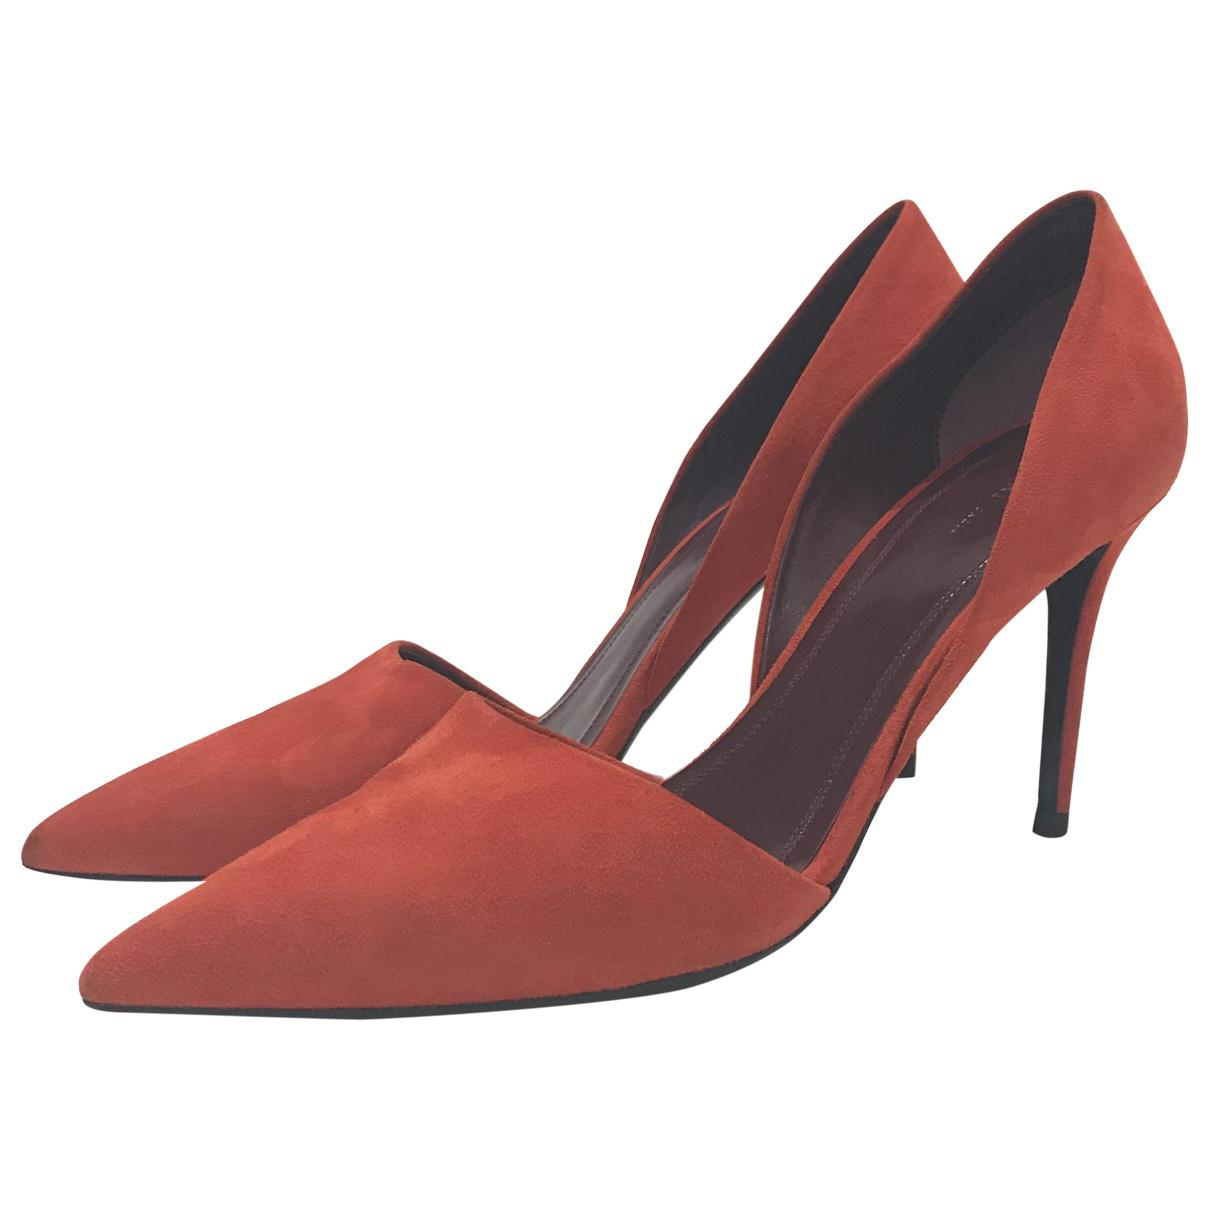 Pre-owned - Heels Celine 70oUzQnlQ